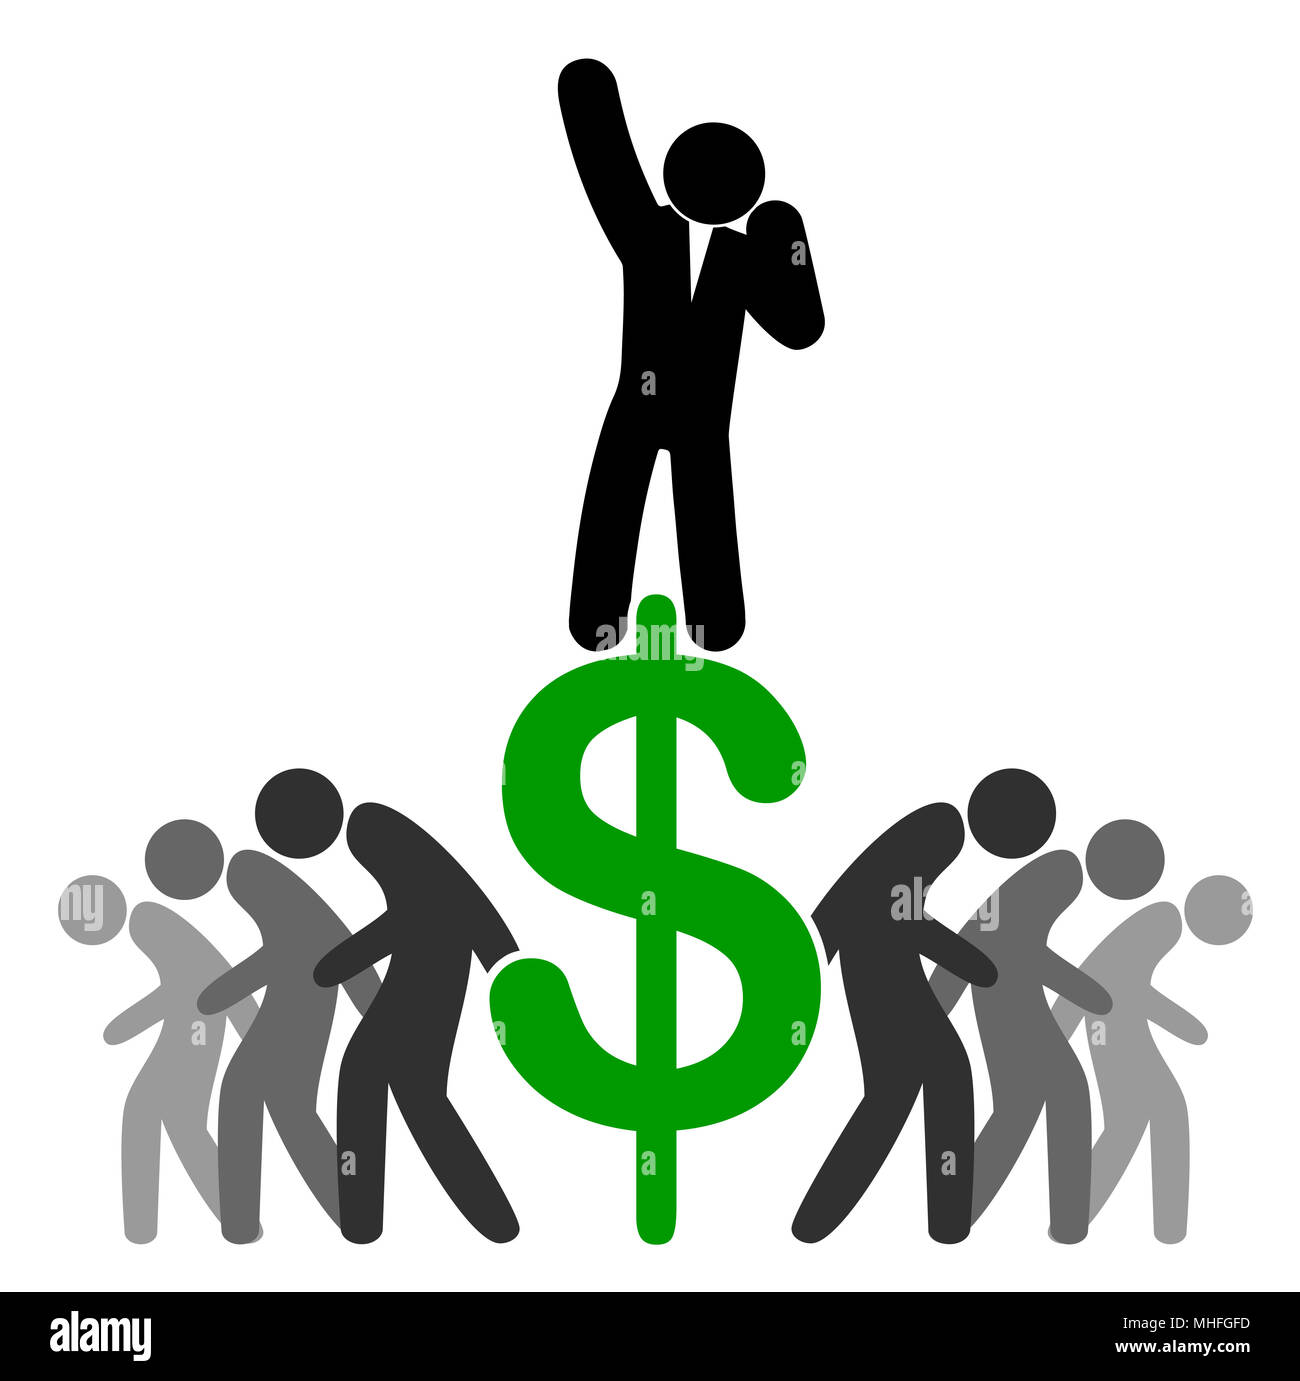 Business metaphor for workers getting exploited by racketeer - Stock Image